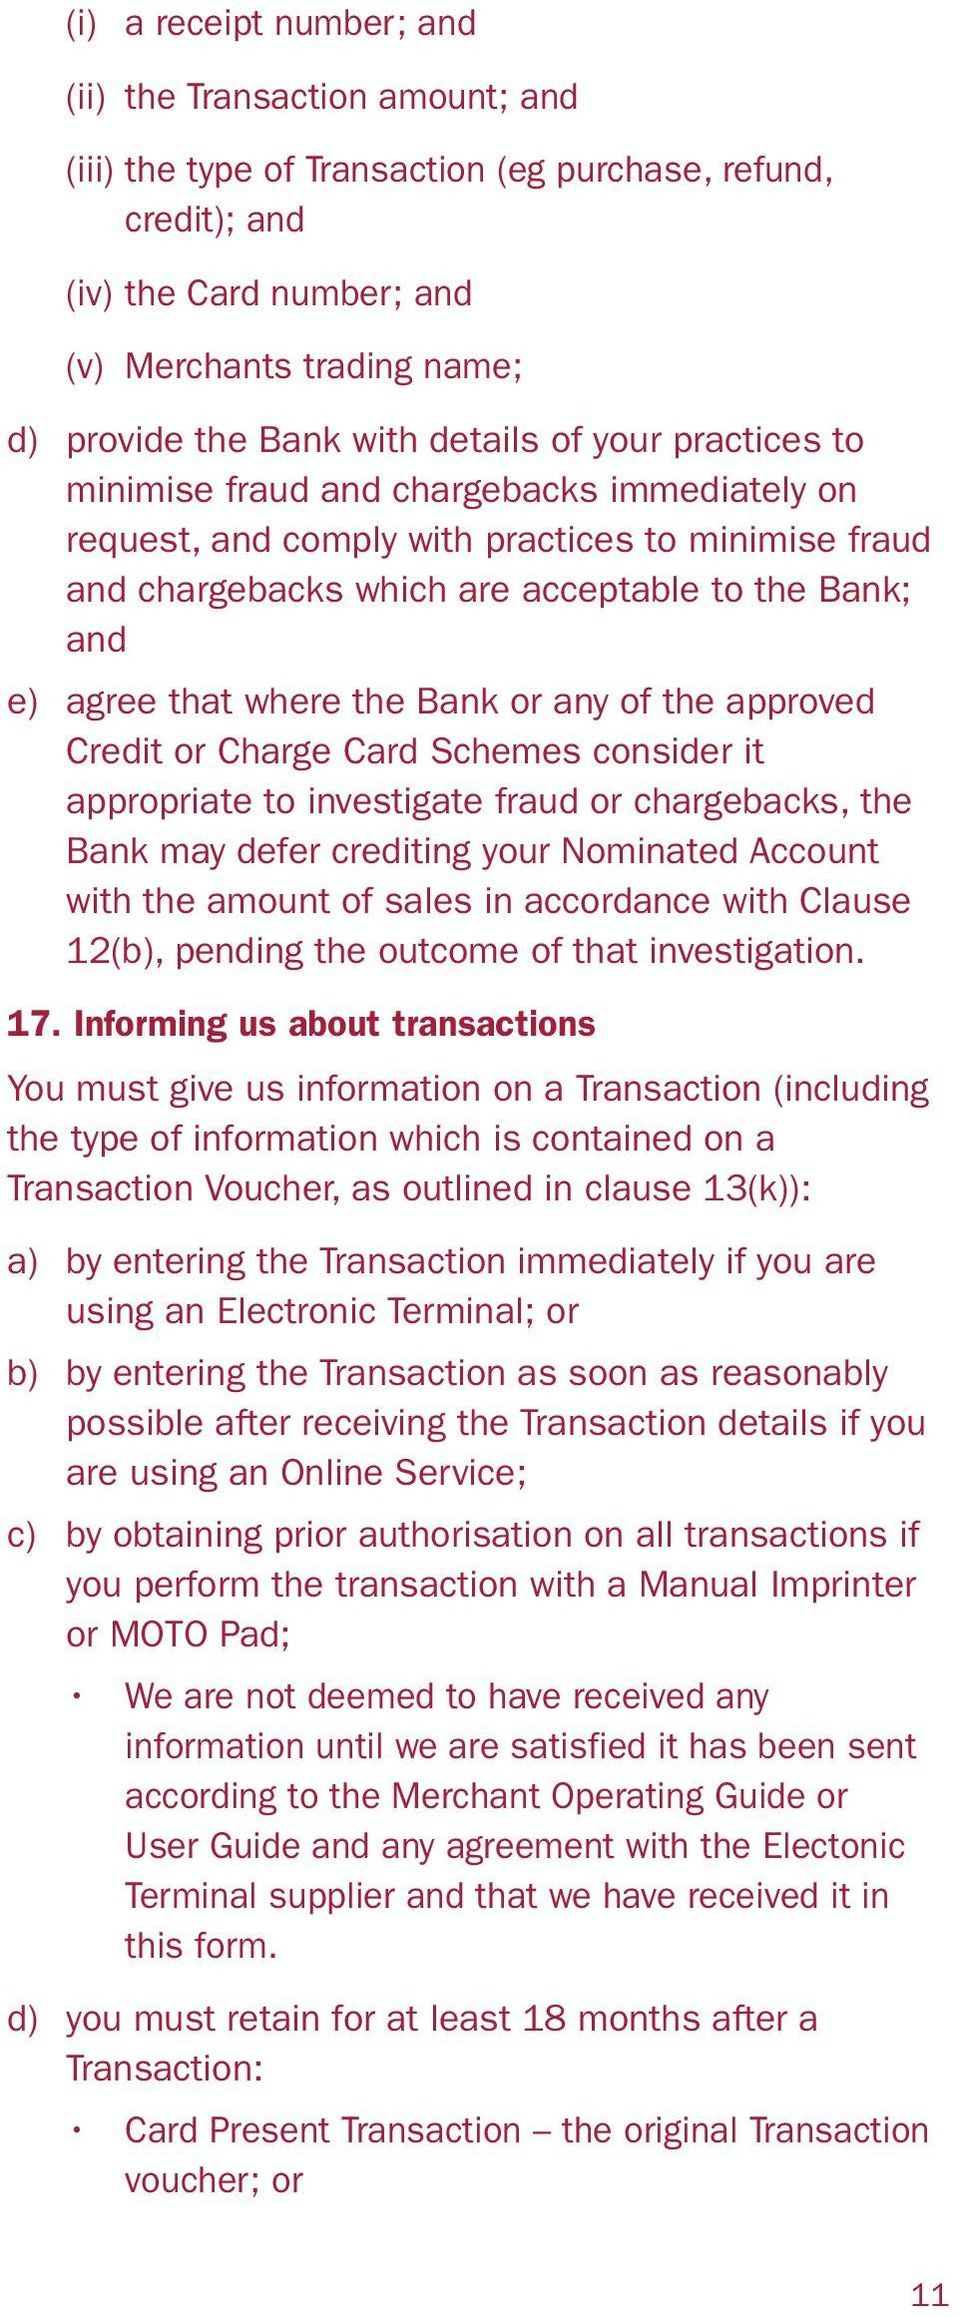 that where the Bank or any of the approved Credit or Charge Card Schemes consider it appropriate to investigate fraud or chargebacks, the Bank may defer crediting your Nominated Account with the